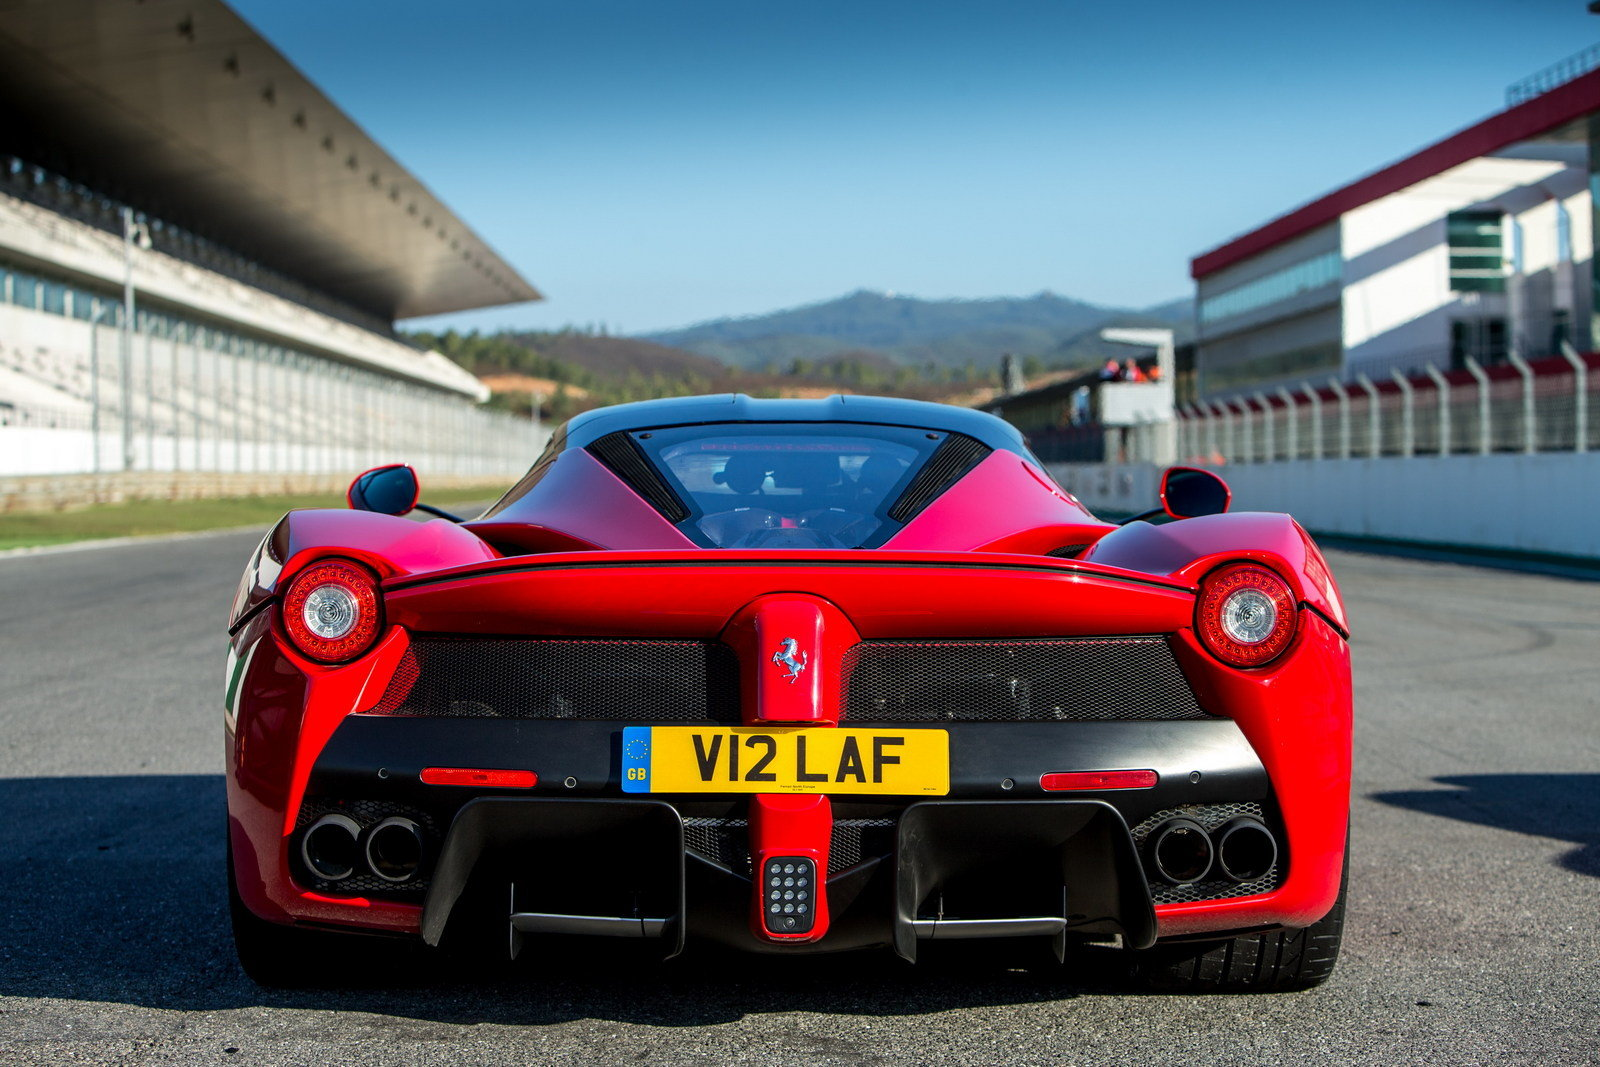 Ferrari will auction laferrari v12 laf license plate for for How to buy a car from charity motors